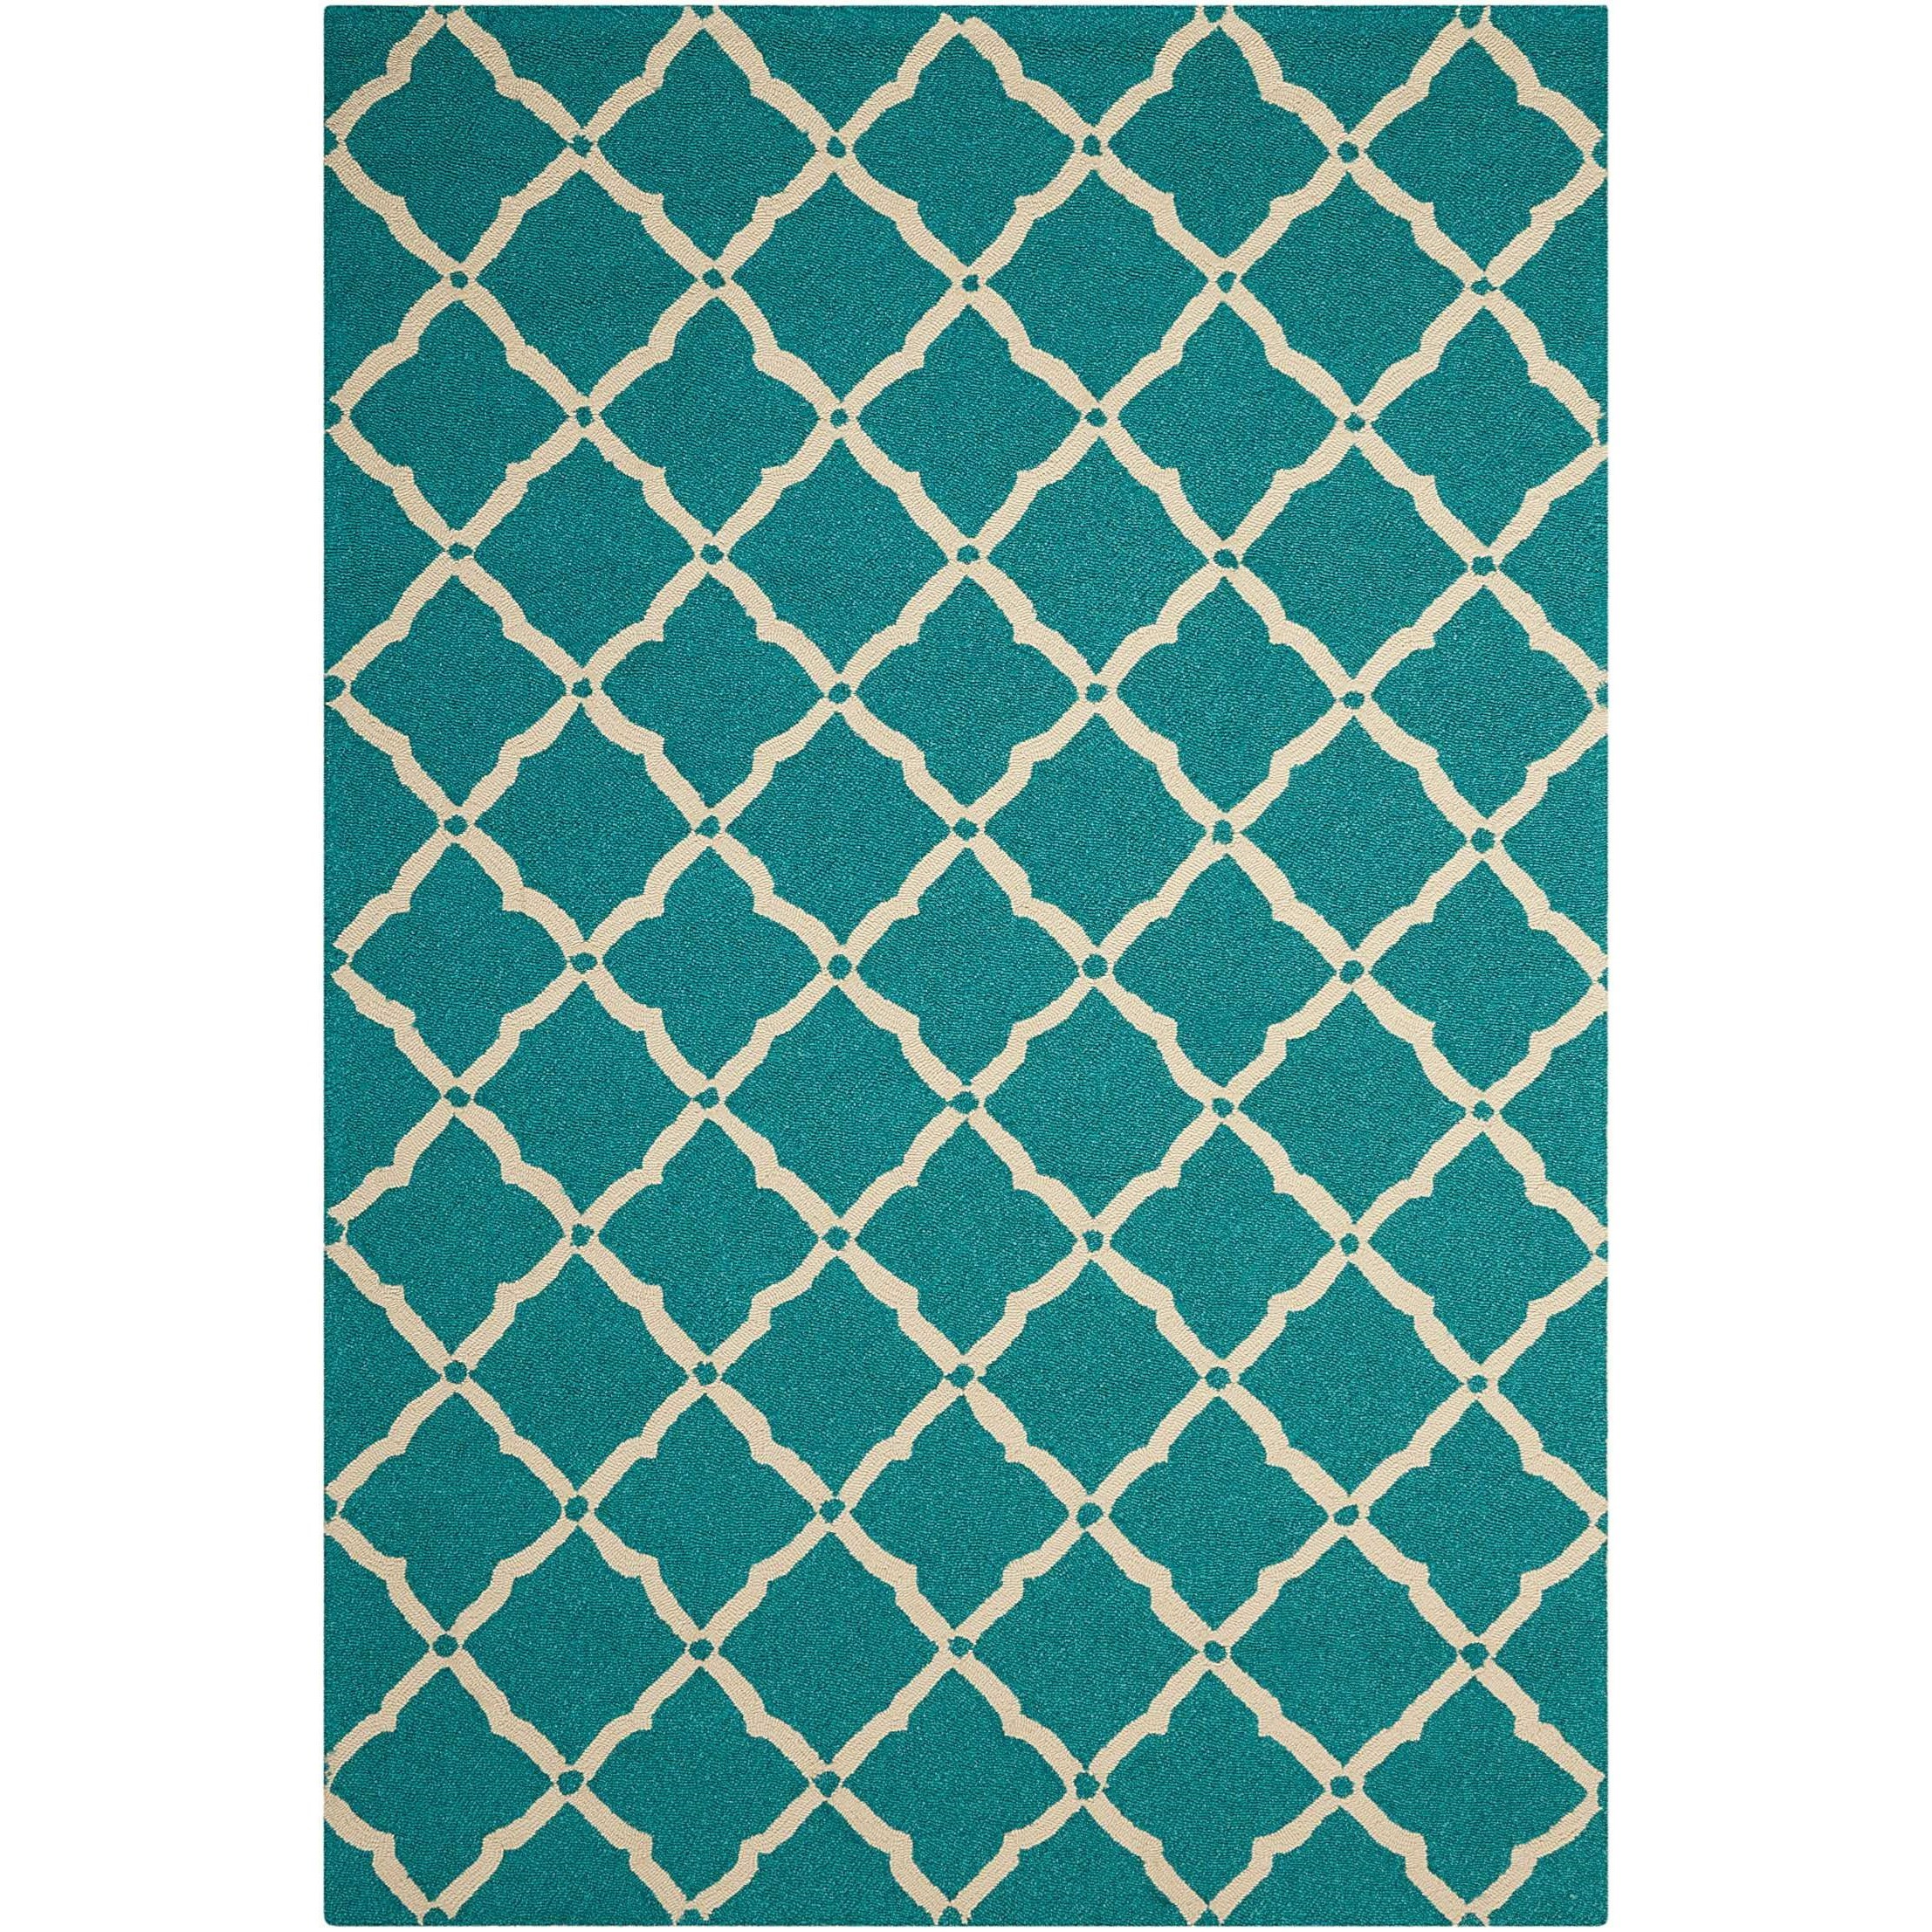 """Portico 3'6"""" x 5'6"""" Aqua Rectangle Rug by Nourison at Home Collections Furniture"""